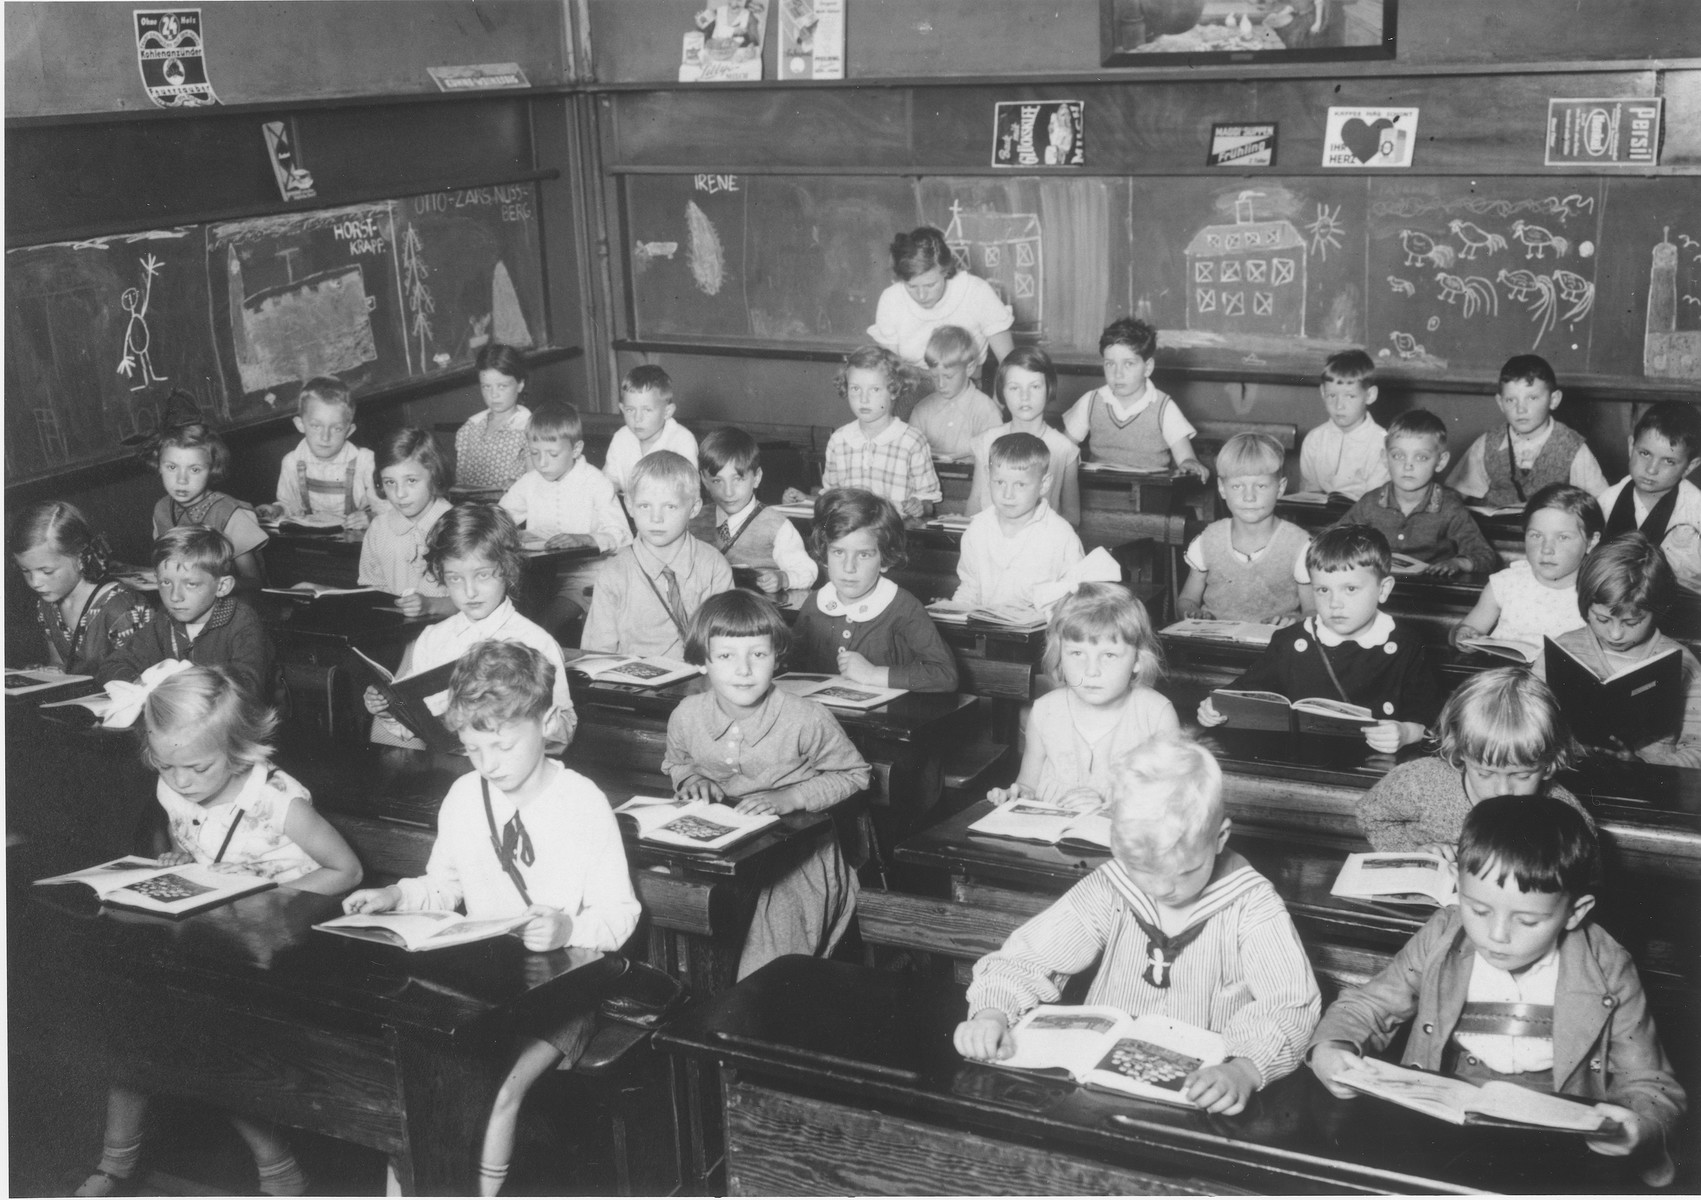 First grade pupils study in a classroom in a public school in Hamburg.  Eva Rosenbaum is seated in the center desk on the right (with the white collar).